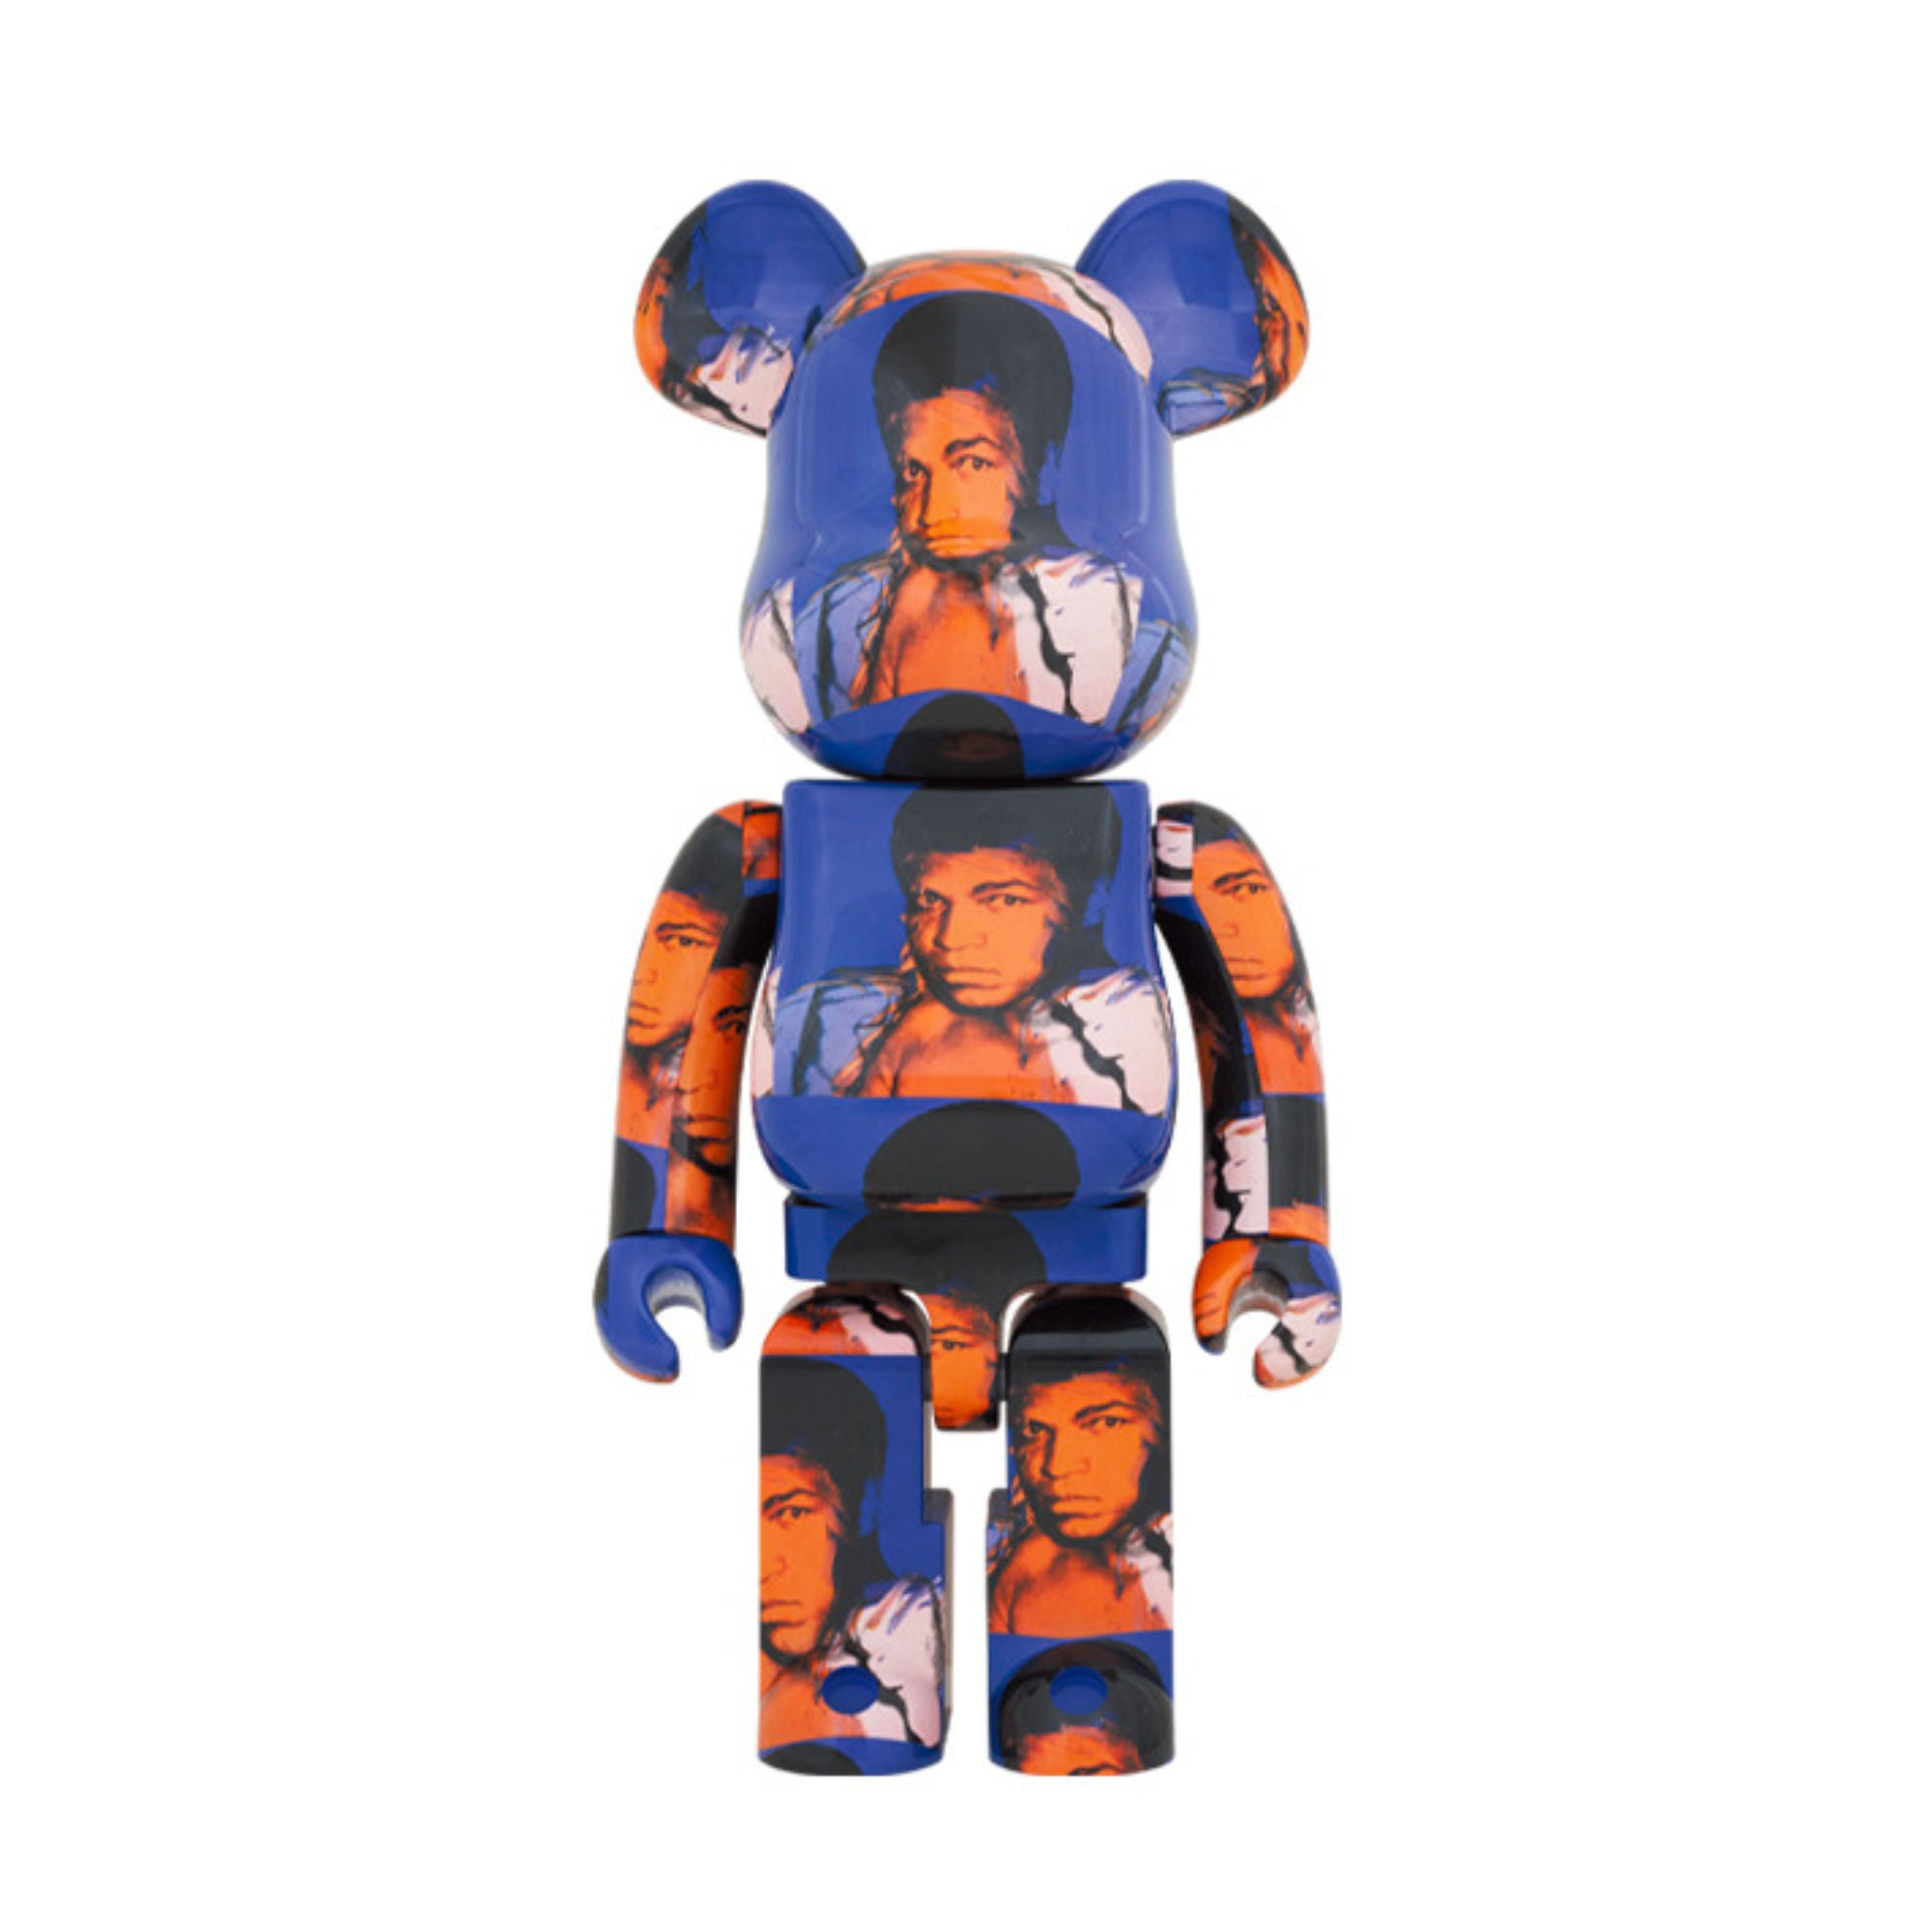 BE@RBRICK Andy Warhol's Muhammad Ali(TM) 1000% (To be shipped in late Jan 2021)